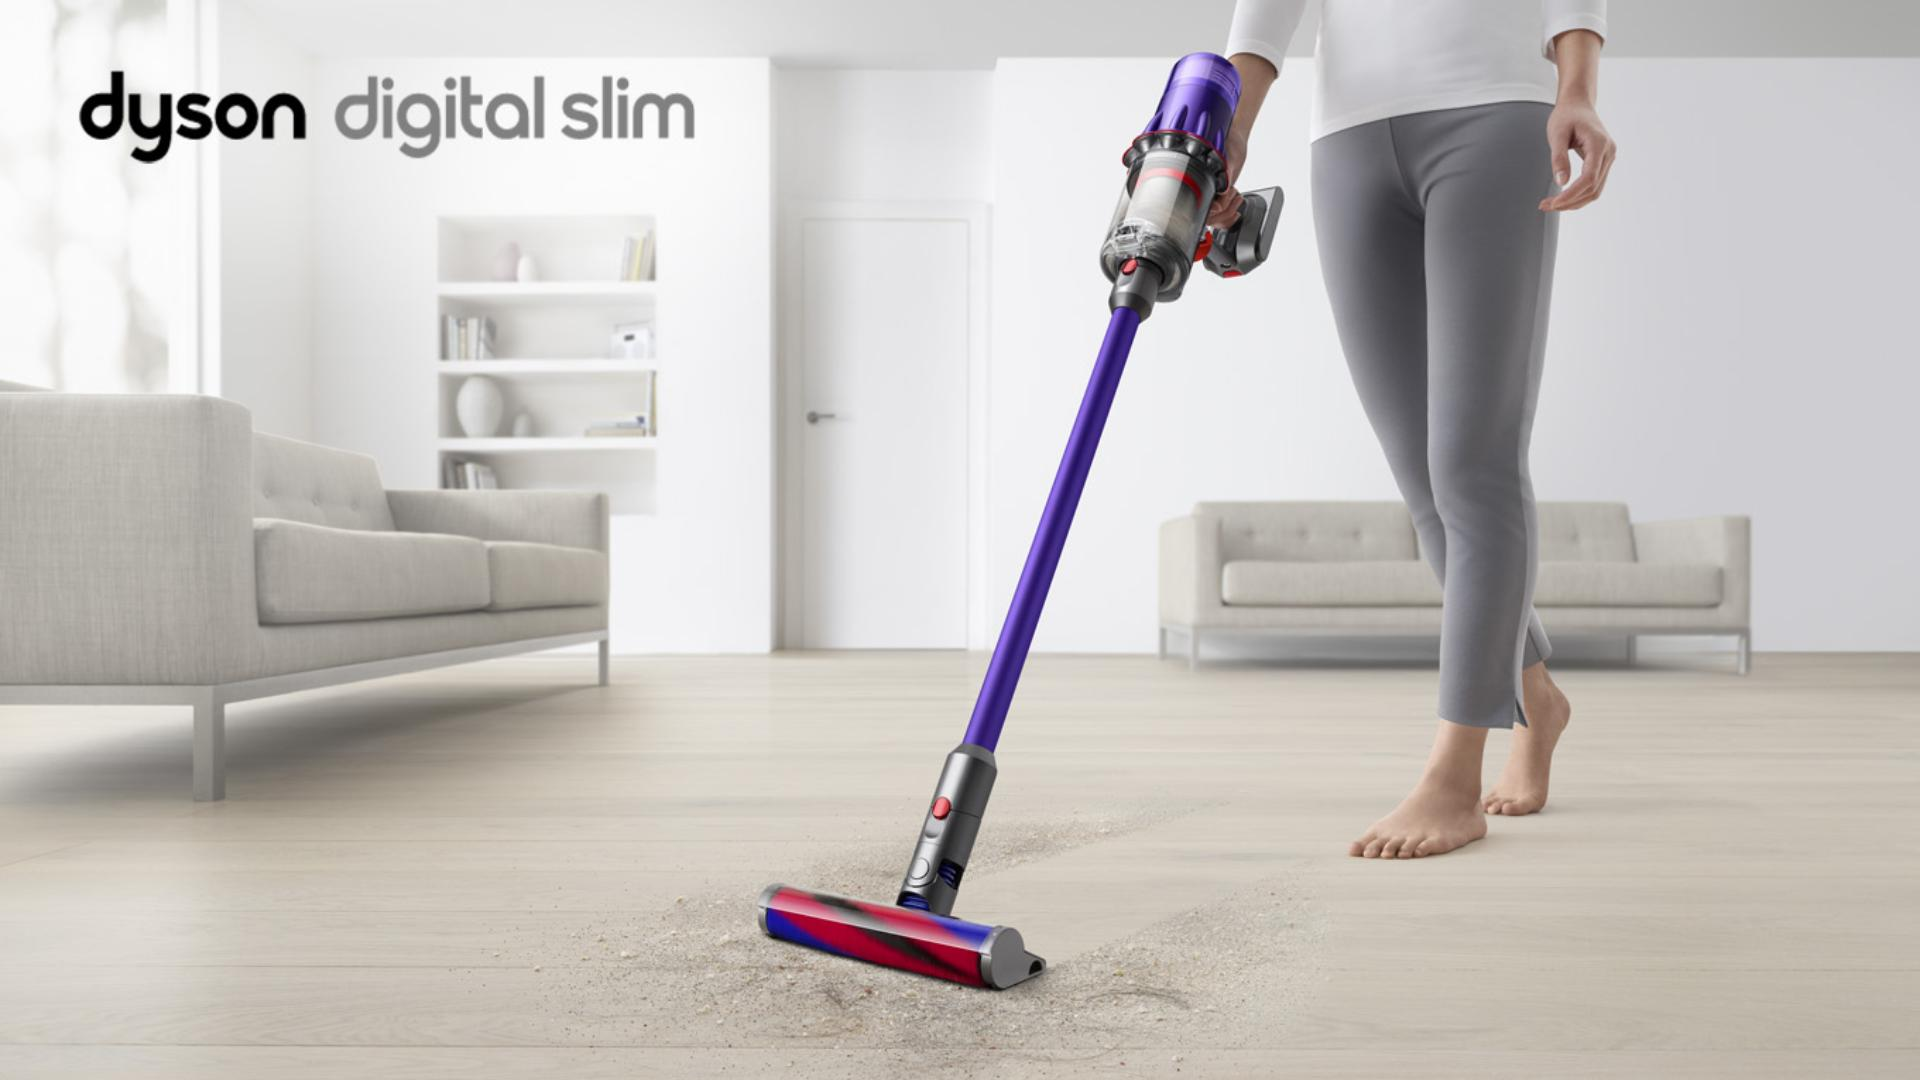 Image of a woman using a Dyson Digital Slim™ vacuum on a hard floor.